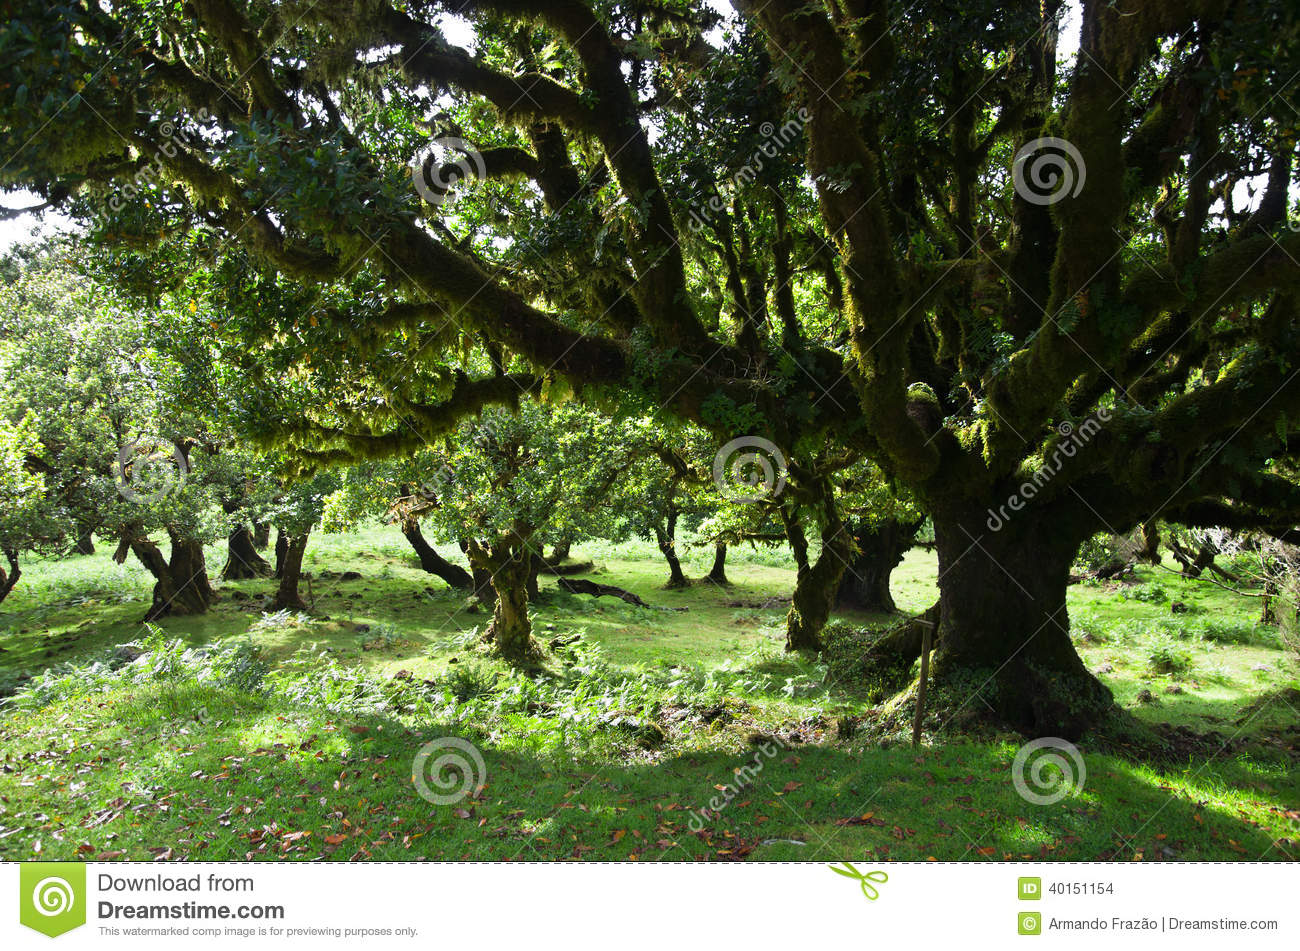 Til Trees Of 500 Years Old, Madeira Stock Photo.